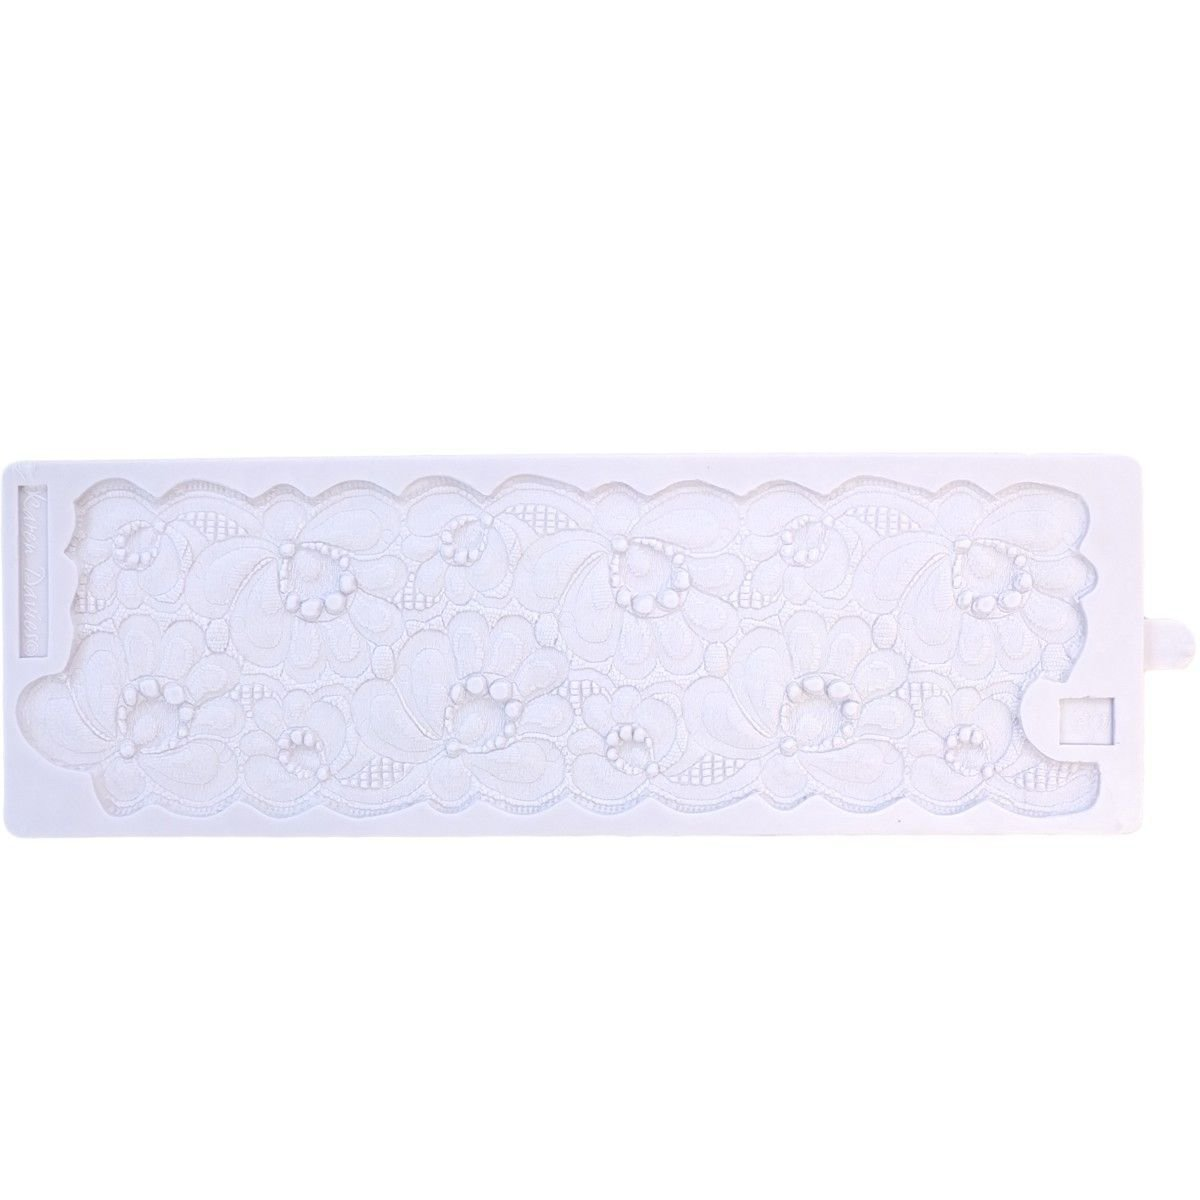 Karen Davies -Silicone Mould -Amy Lace - Δαντέλα Amy Καλούπι